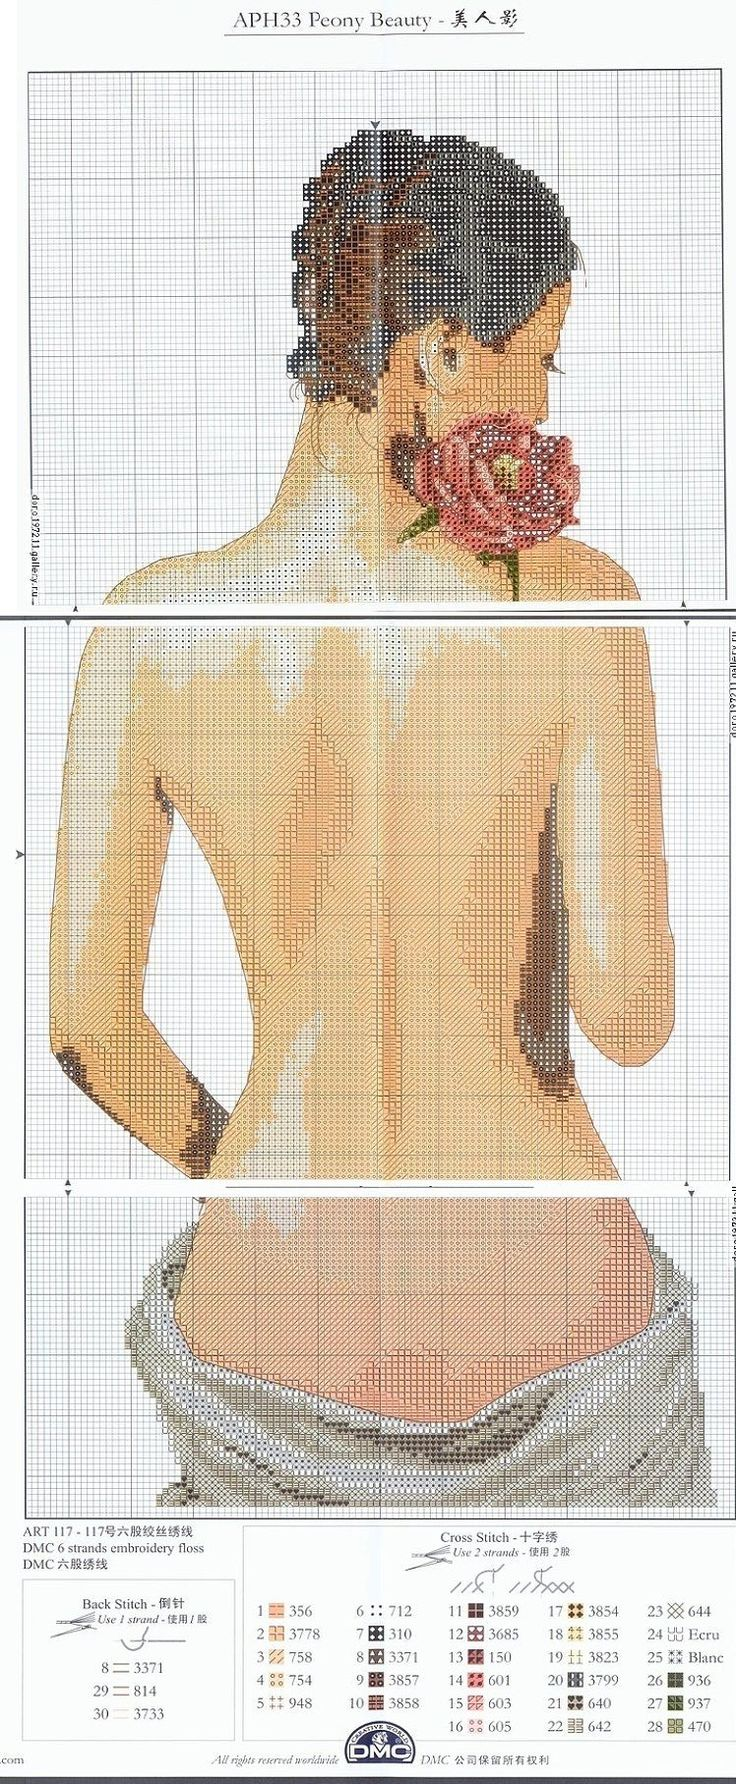 0 point de croix femme à son bain - cross stitch lady at her bath